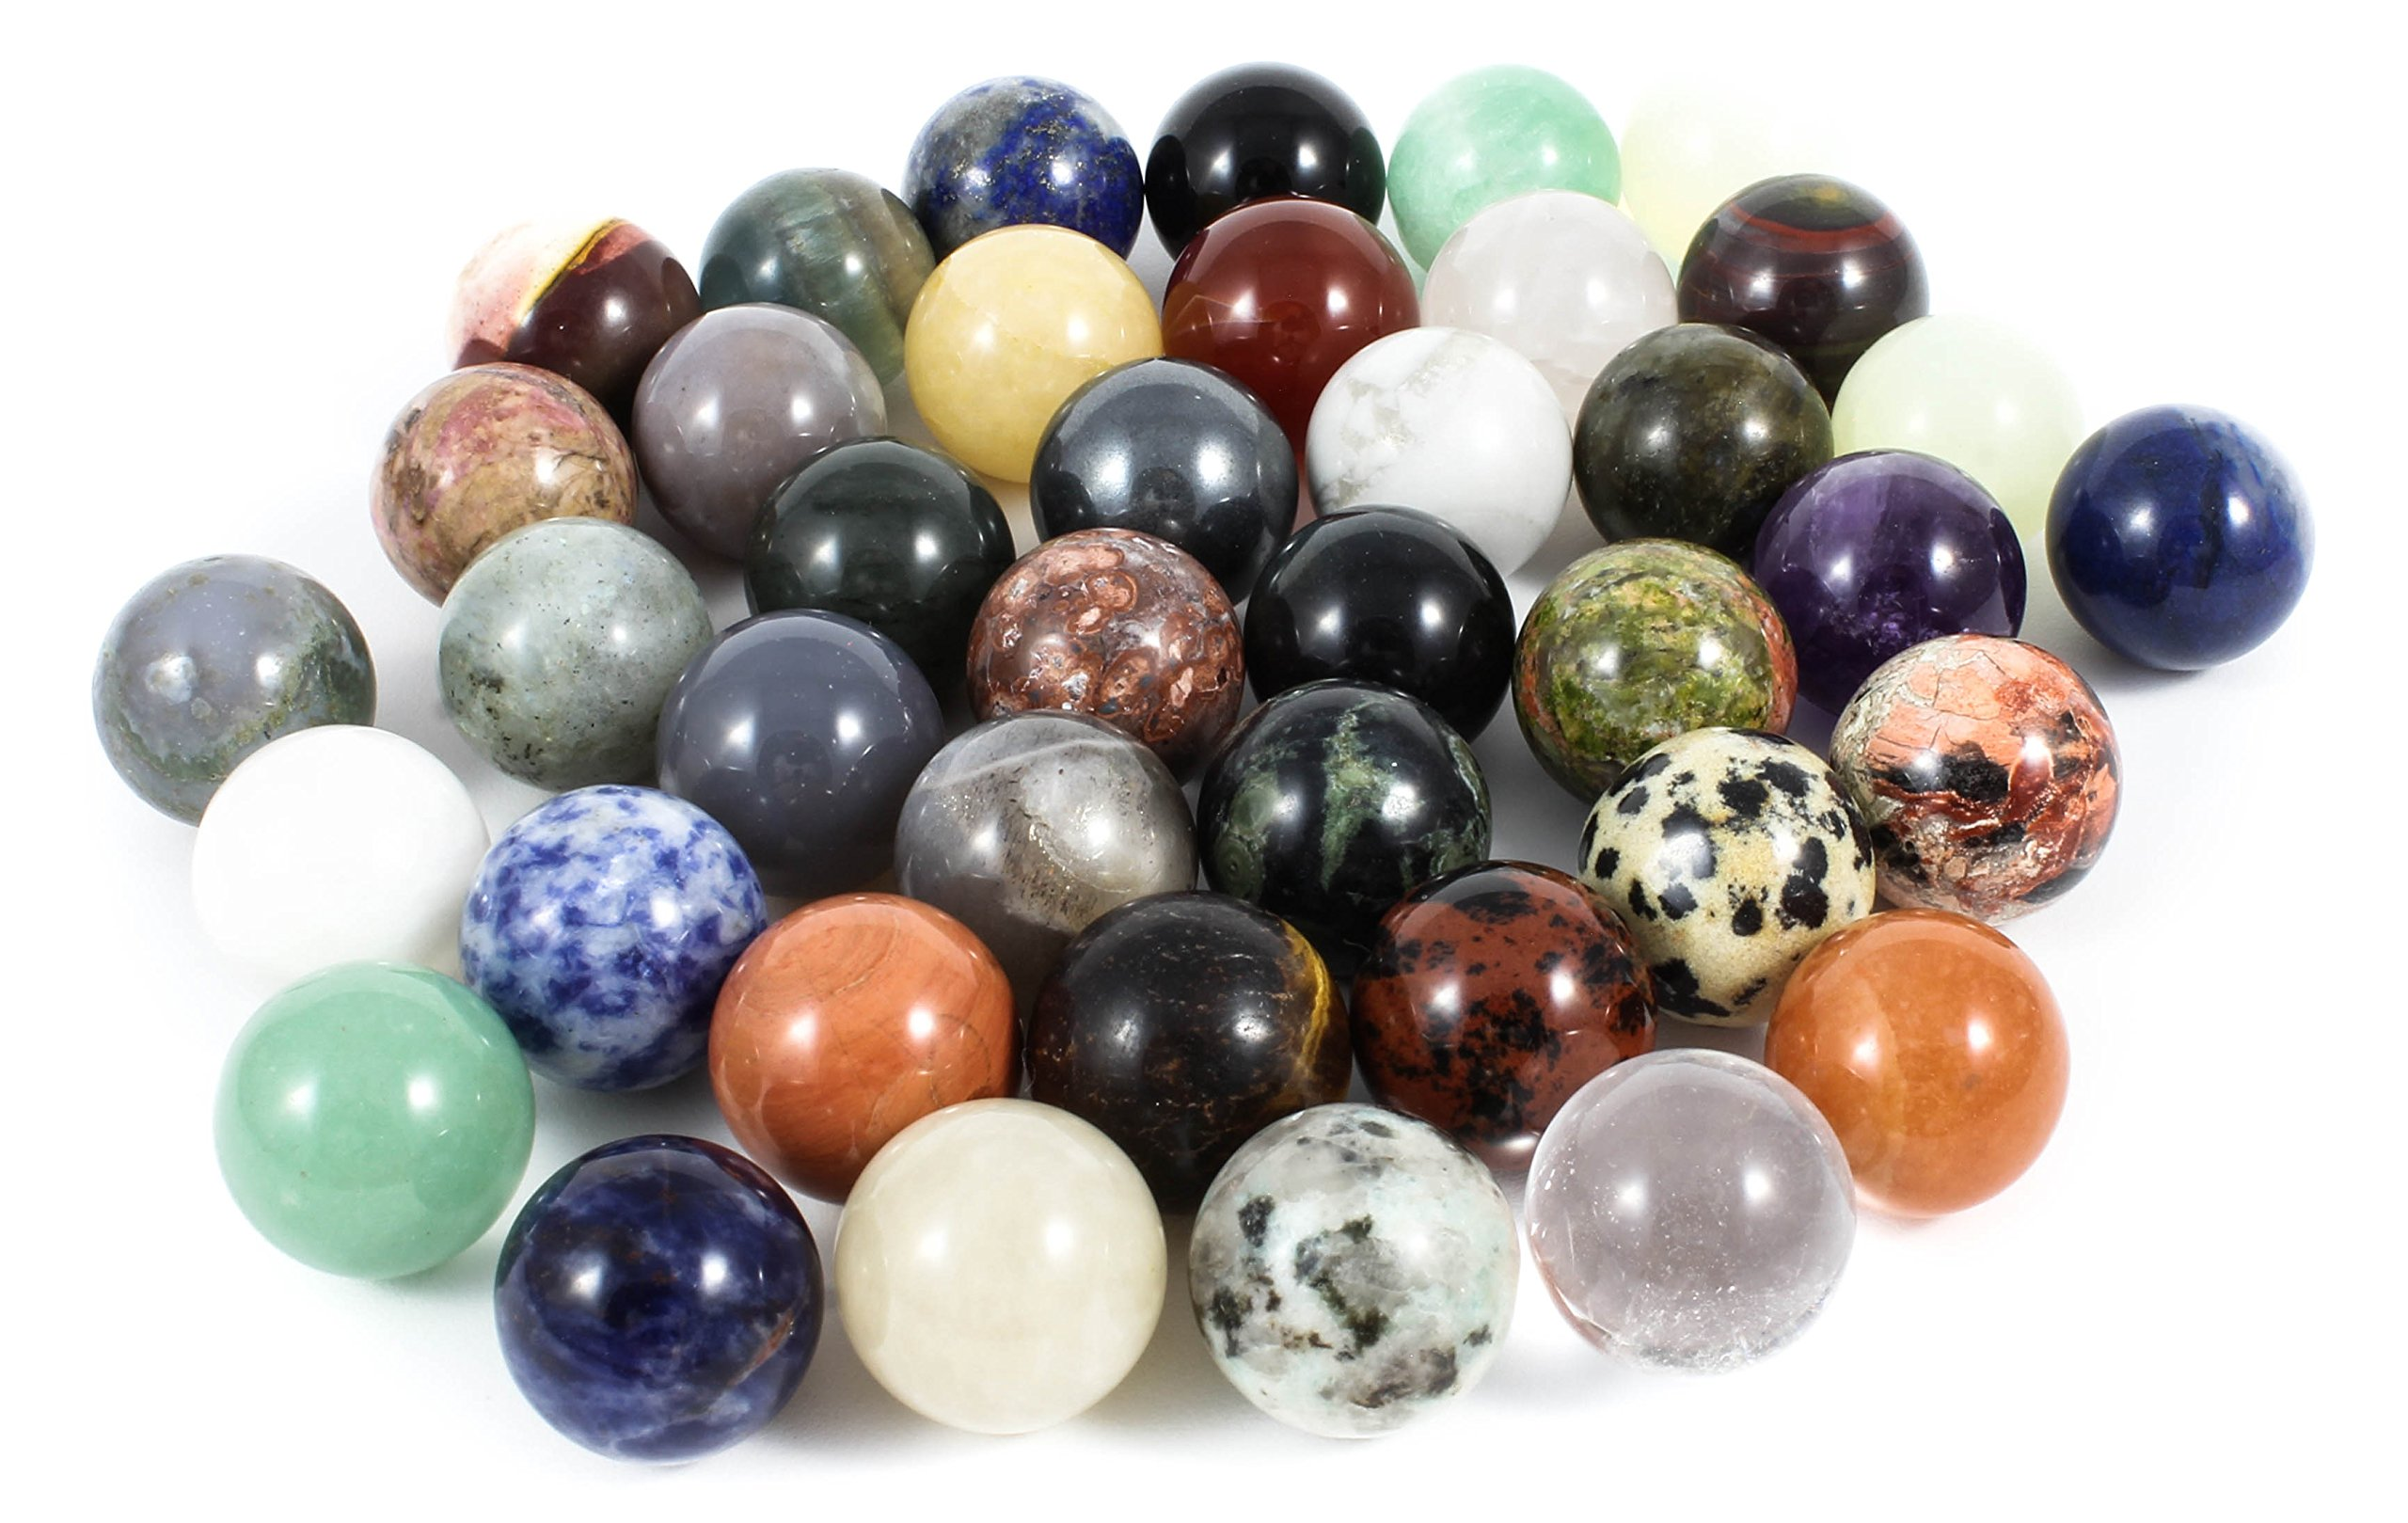 Genuine Mineral, Gemstone, Crystal Marbles Assortment, 18mm (40-Count)